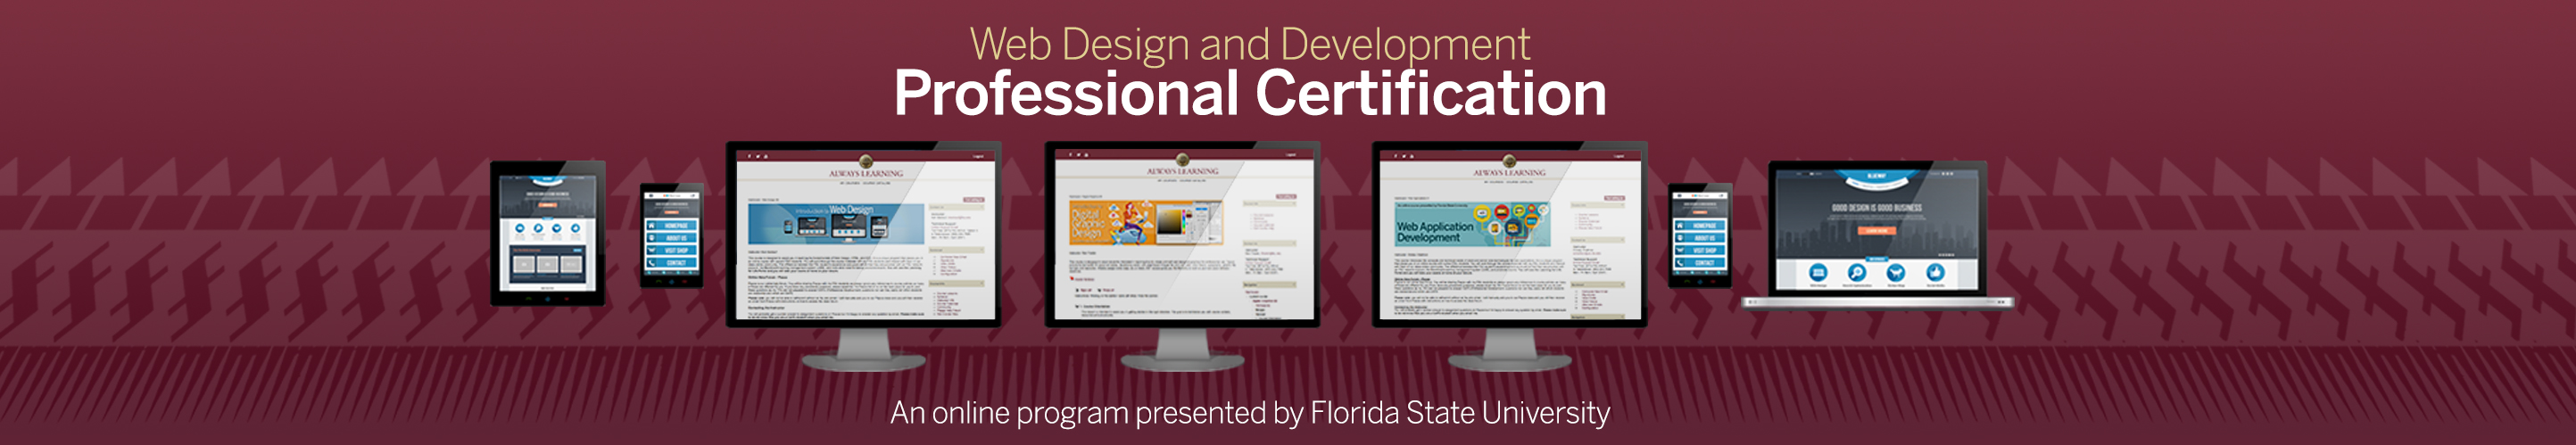 Web design and development professional certification for Household bargaining and the design of couples income taxation